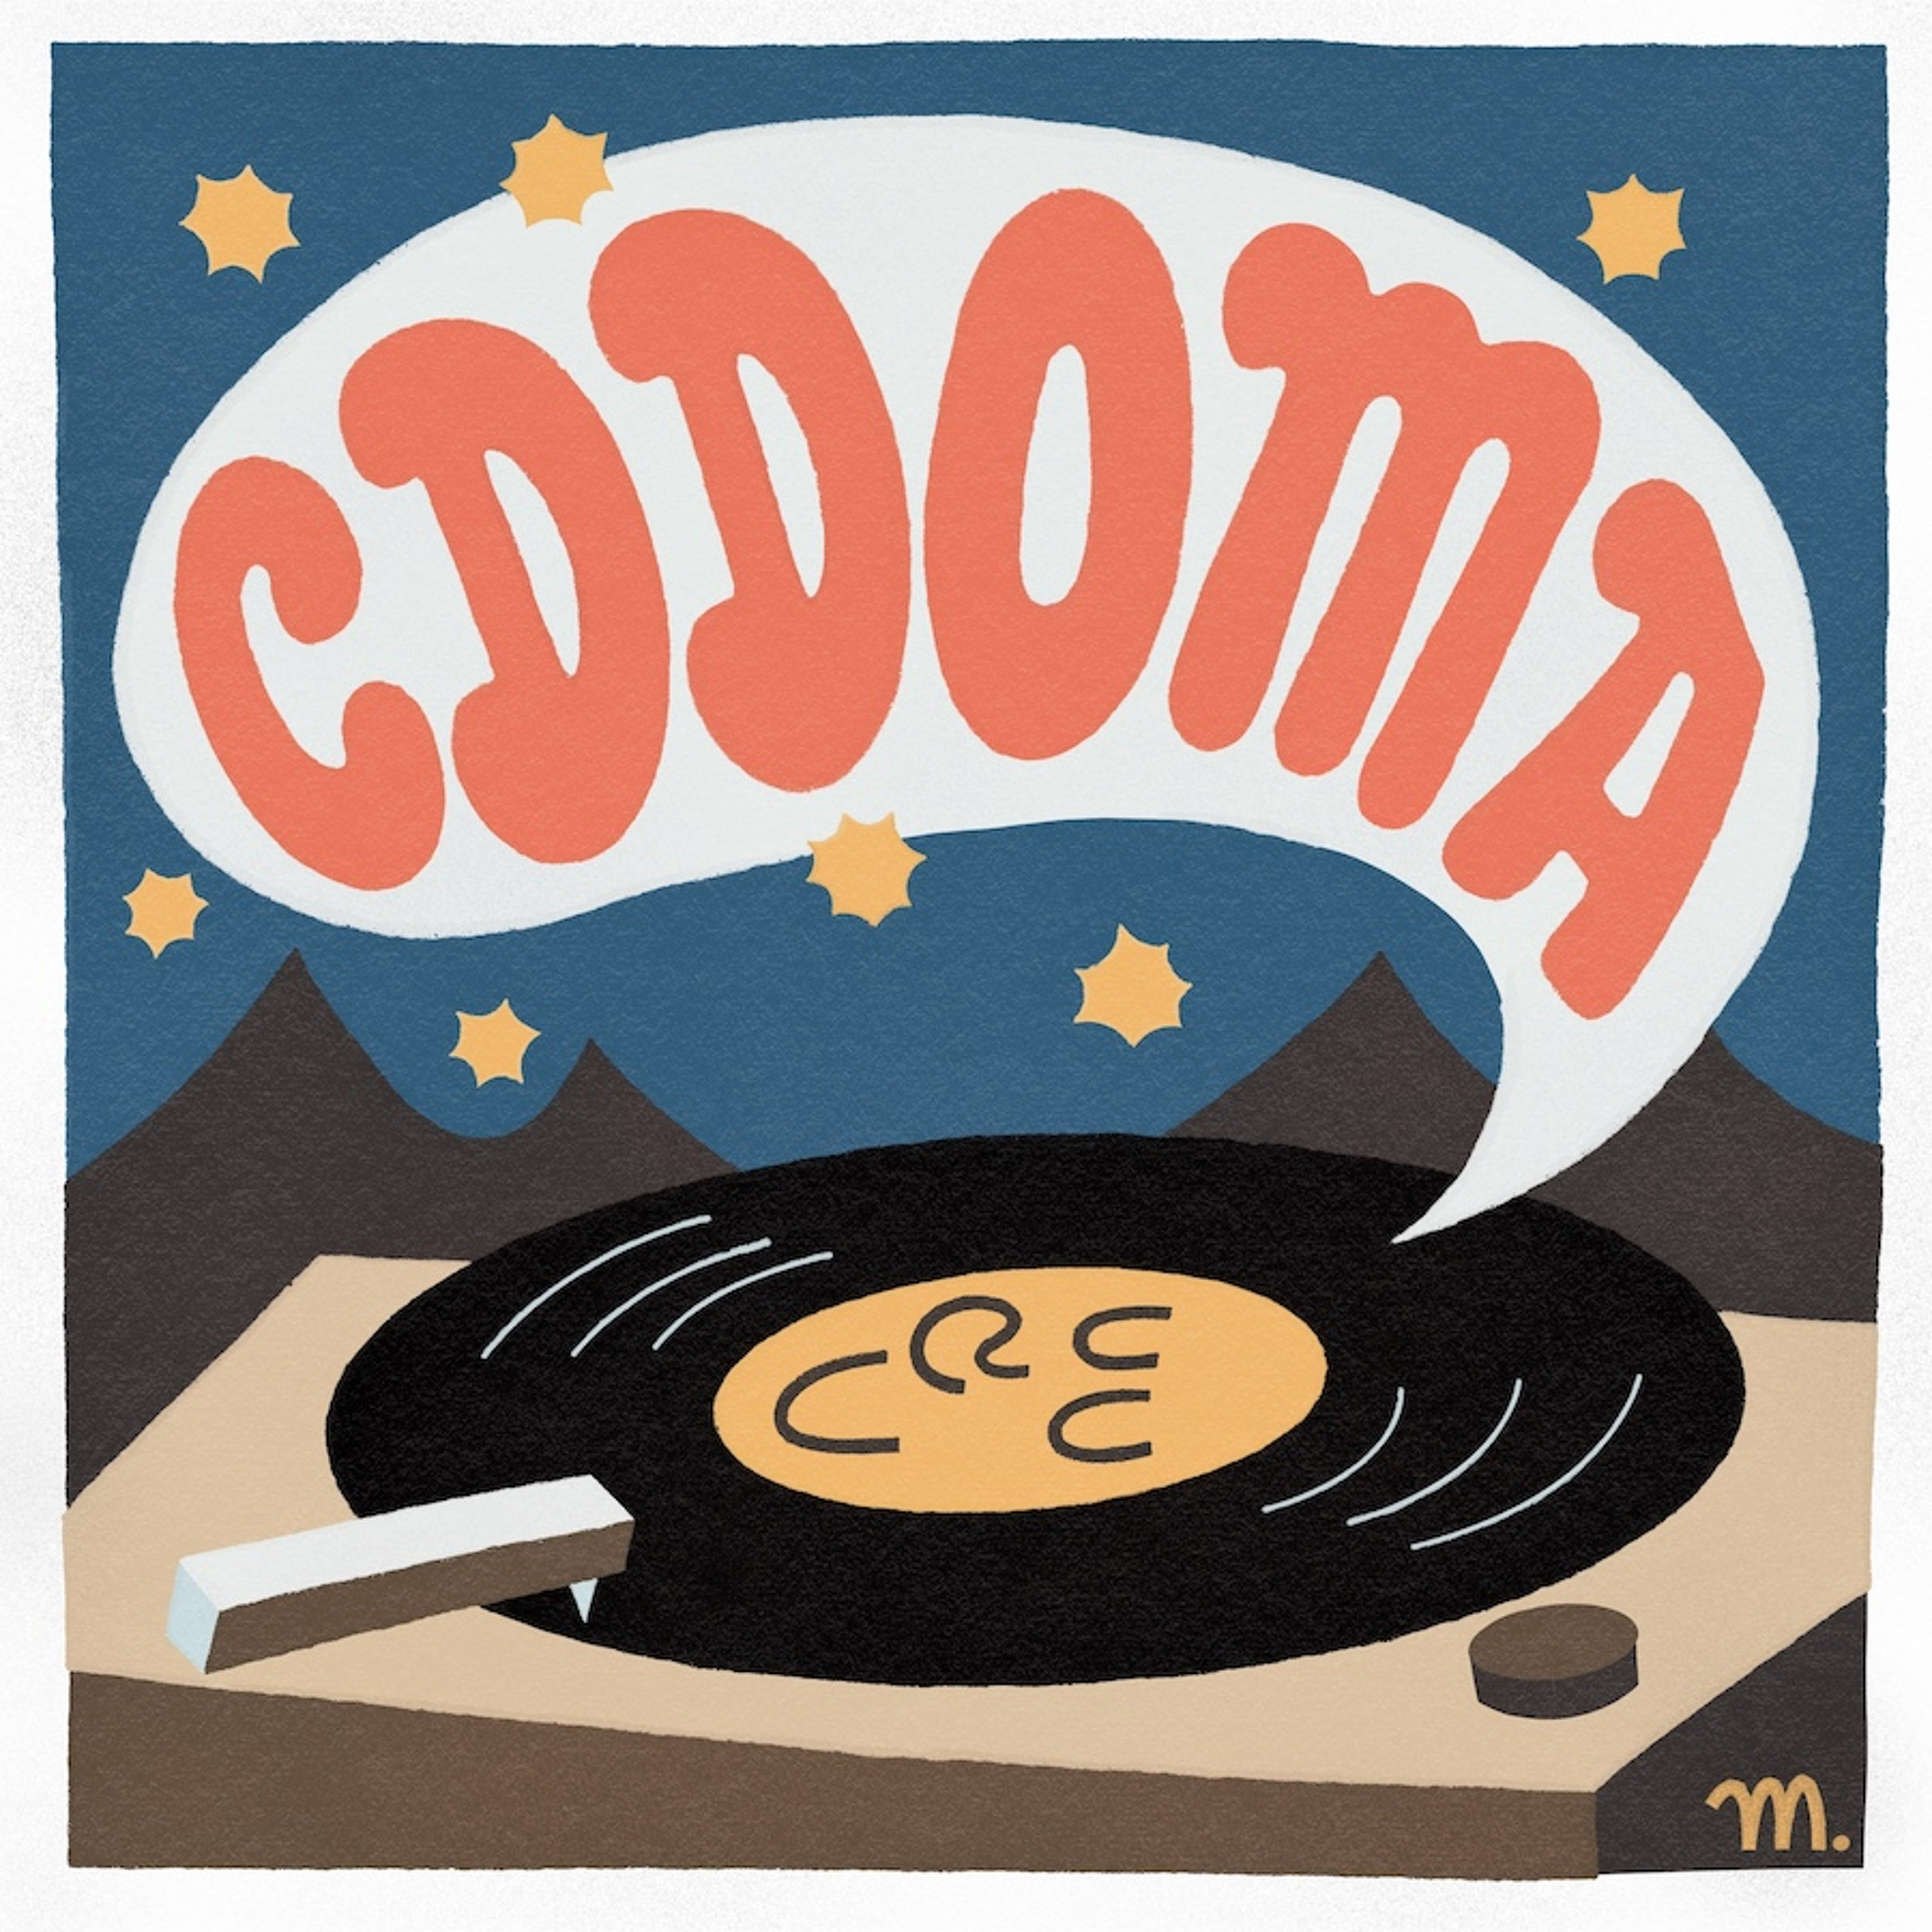 Mix of the Week #380: CDDOMA